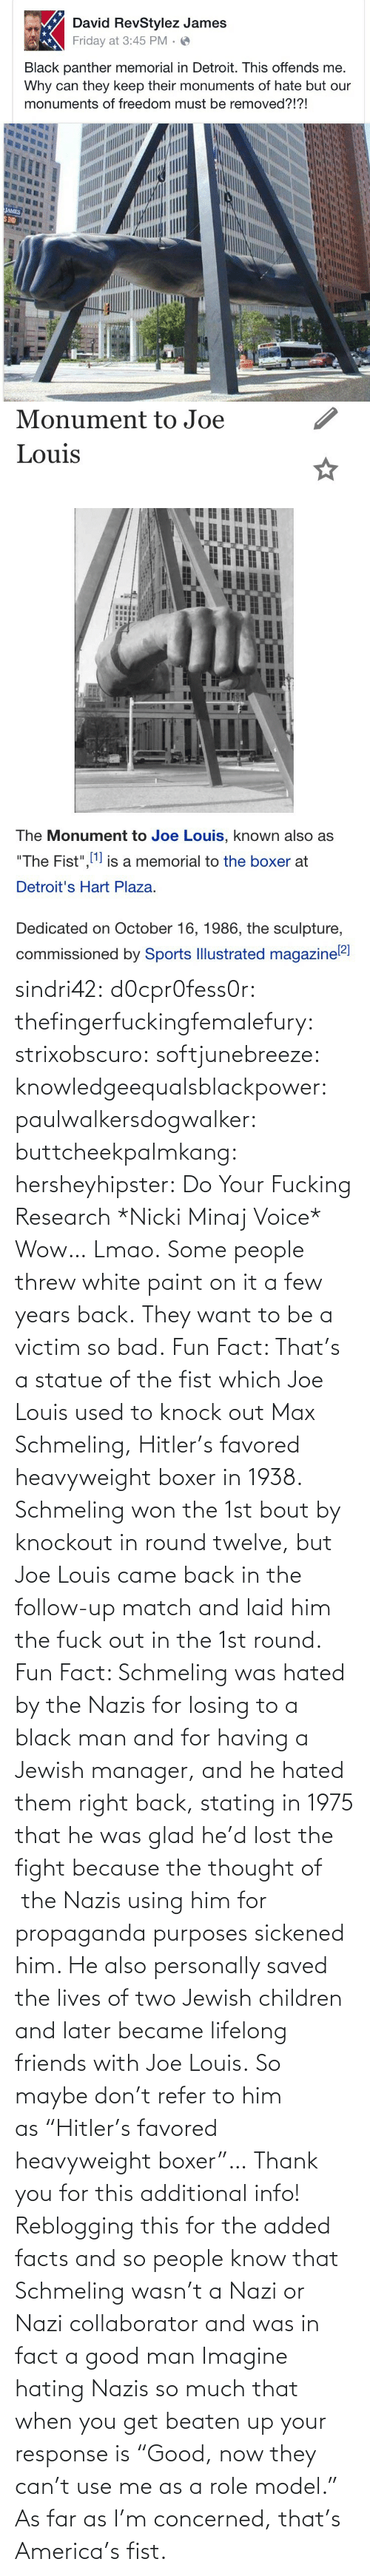 "Voice: sindri42:  d0cpr0fess0r:  thefingerfuckingfemalefury:  strixobscuro:  softjunebreeze:  knowledgeequalsblackpower:  paulwalkersdogwalker:   buttcheekpalmkang:   hersheyhipster:  Do Your Fucking Research *Nicki Minaj Voice*    Wow… Lmao.   Some people threw white paint on it a few years back.   They want to be a victim so bad.  Fun Fact: That's a statue of the fist which Joe Louis used to knock out Max Schmeling, Hitler's favored heavyweight boxer in 1938. Schmeling won the 1st bout by knockout in round twelve, but Joe Louis came back in the follow-up match and laid him the fuck out in the 1st round.  Fun Fact: Schmeling was hated by the Nazis for losing to a black man and for having a Jewish manager, and he hated them right back, stating in 1975 that he was glad he'd lost the fight because the thought of  the Nazis using him for propaganda purposes sickened him. He also personally saved the lives of two Jewish children and later became lifelong friends with Joe Louis. So maybe don't refer to him as ""Hitler's favored heavyweight boxer""…  Thank you for this additional info! Reblogging this for the added facts and so people know that Schmeling wasn't a Nazi or Nazi collaborator and was in fact a good man   Imagine hating Nazis so much that when you get beaten up your response is ""Good, now they can't use me as a role model.""  As far as I'm concerned, that's America's fist."